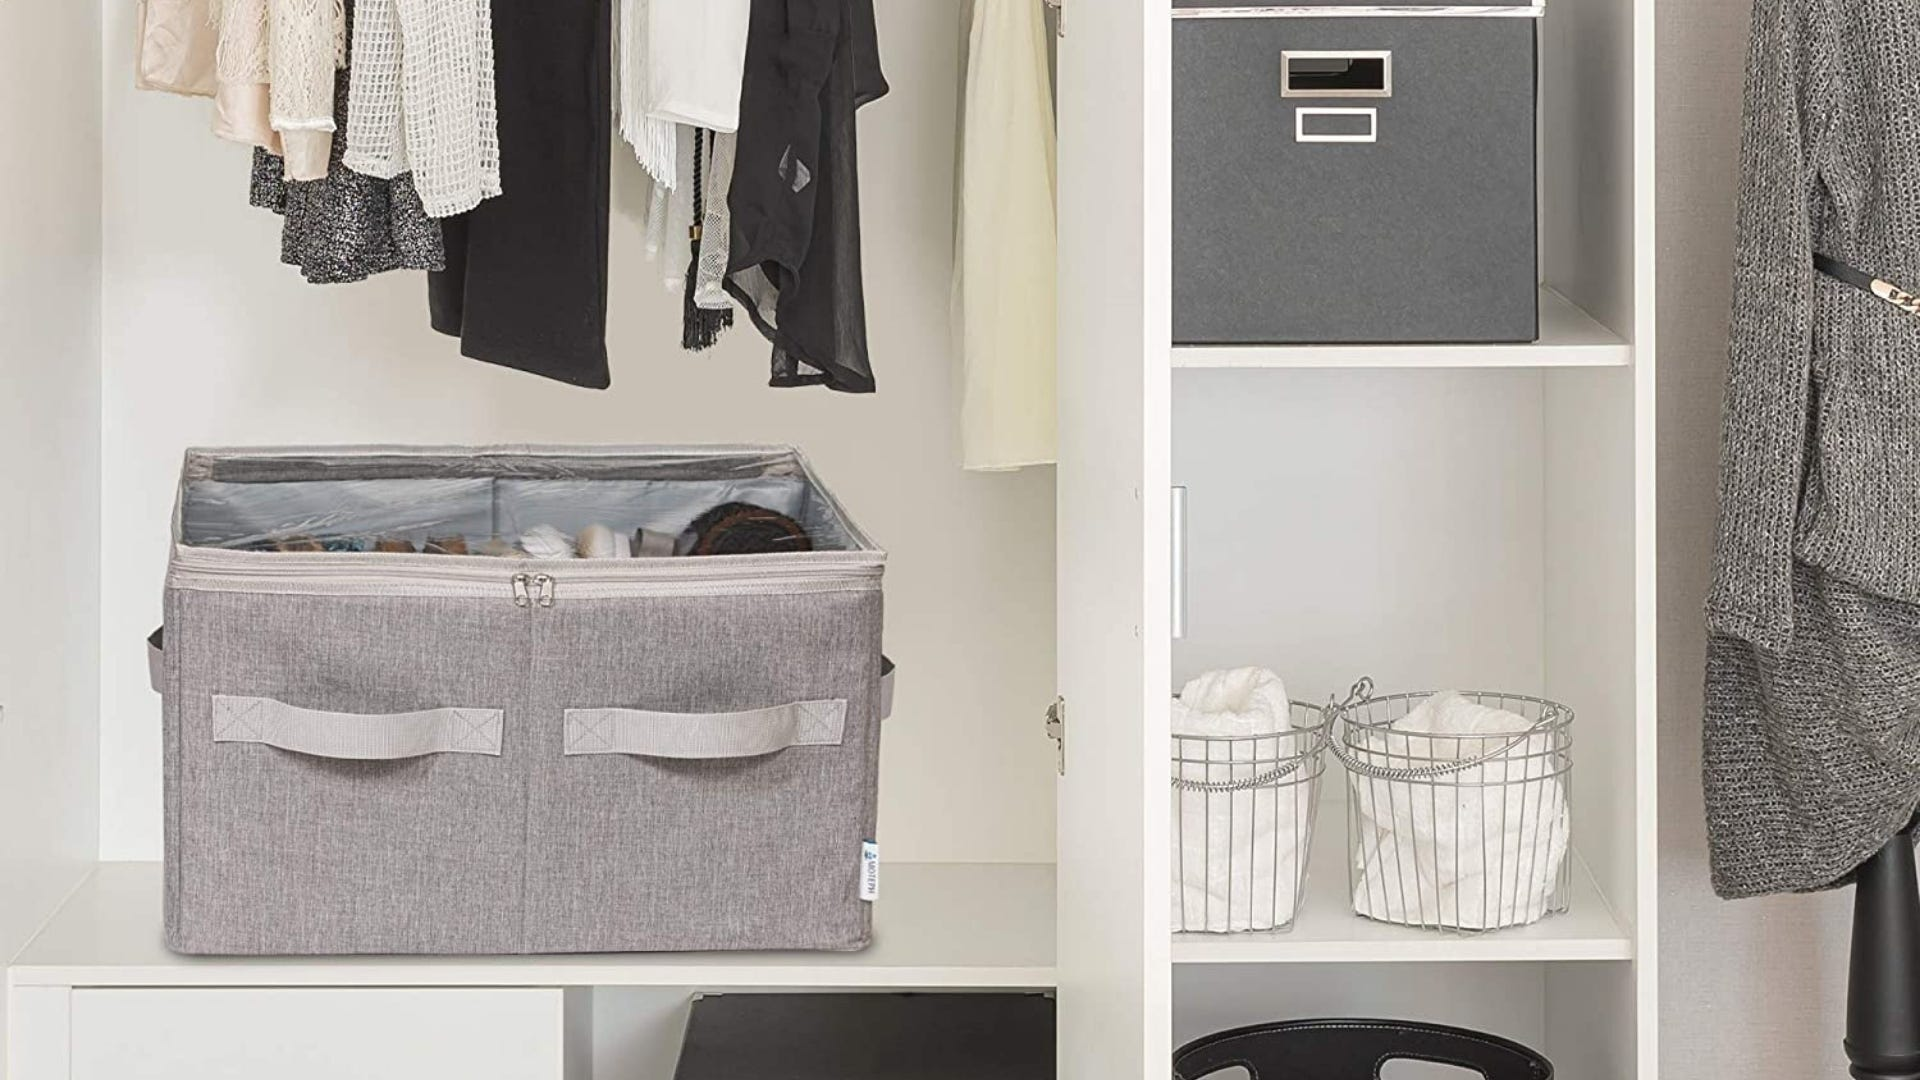 The gray Moteph Shoe Organizer on a shelf in a closet.